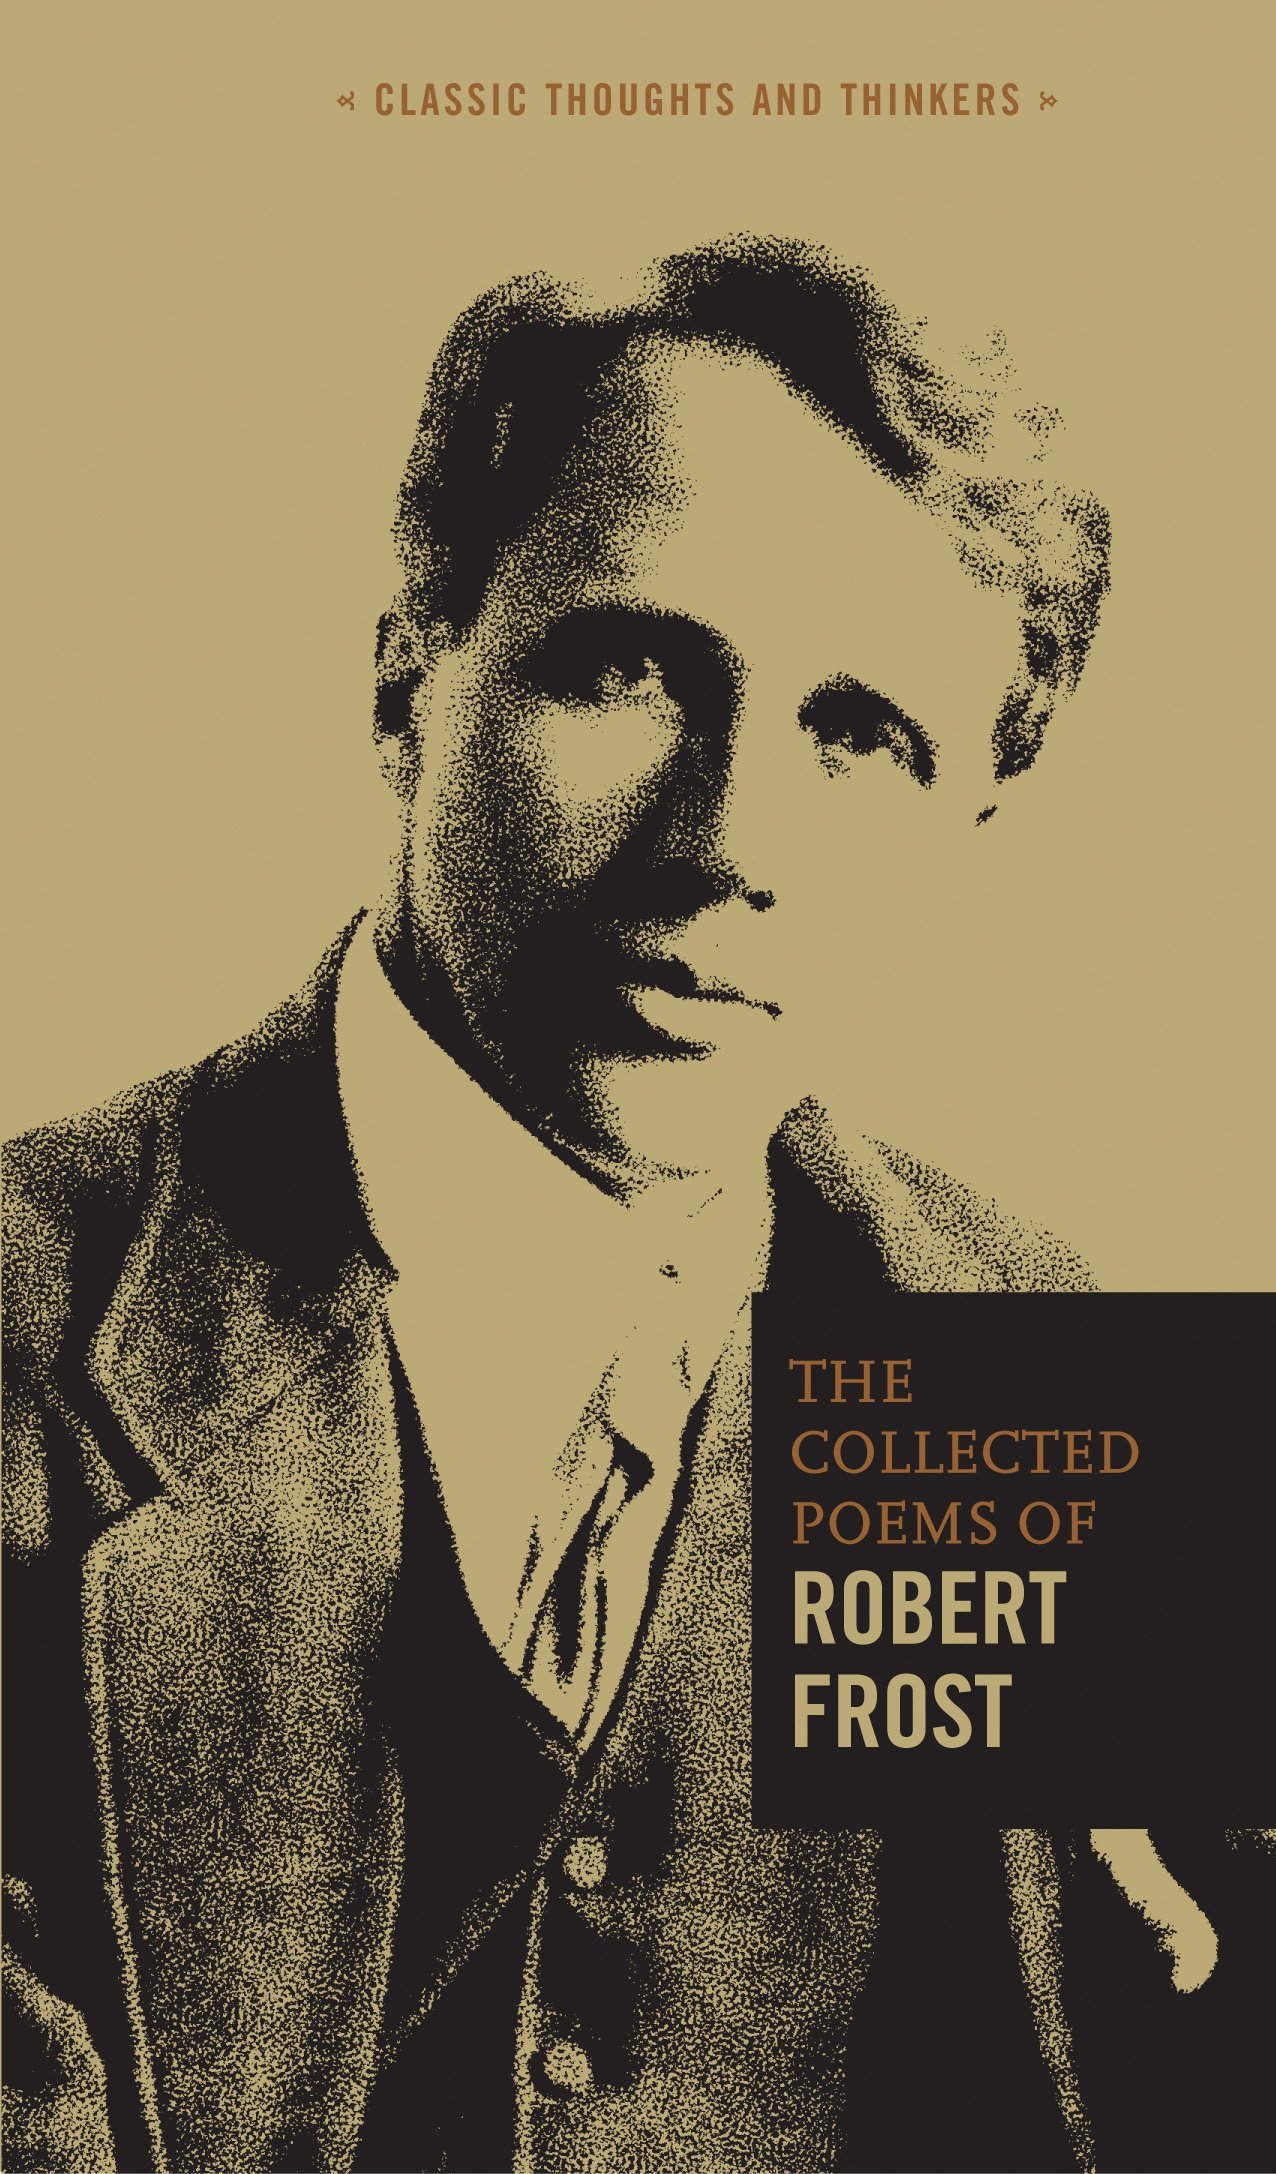 Download The Collected Poems of Robert Frost (Classic Thoughts and Thinkers) pdf